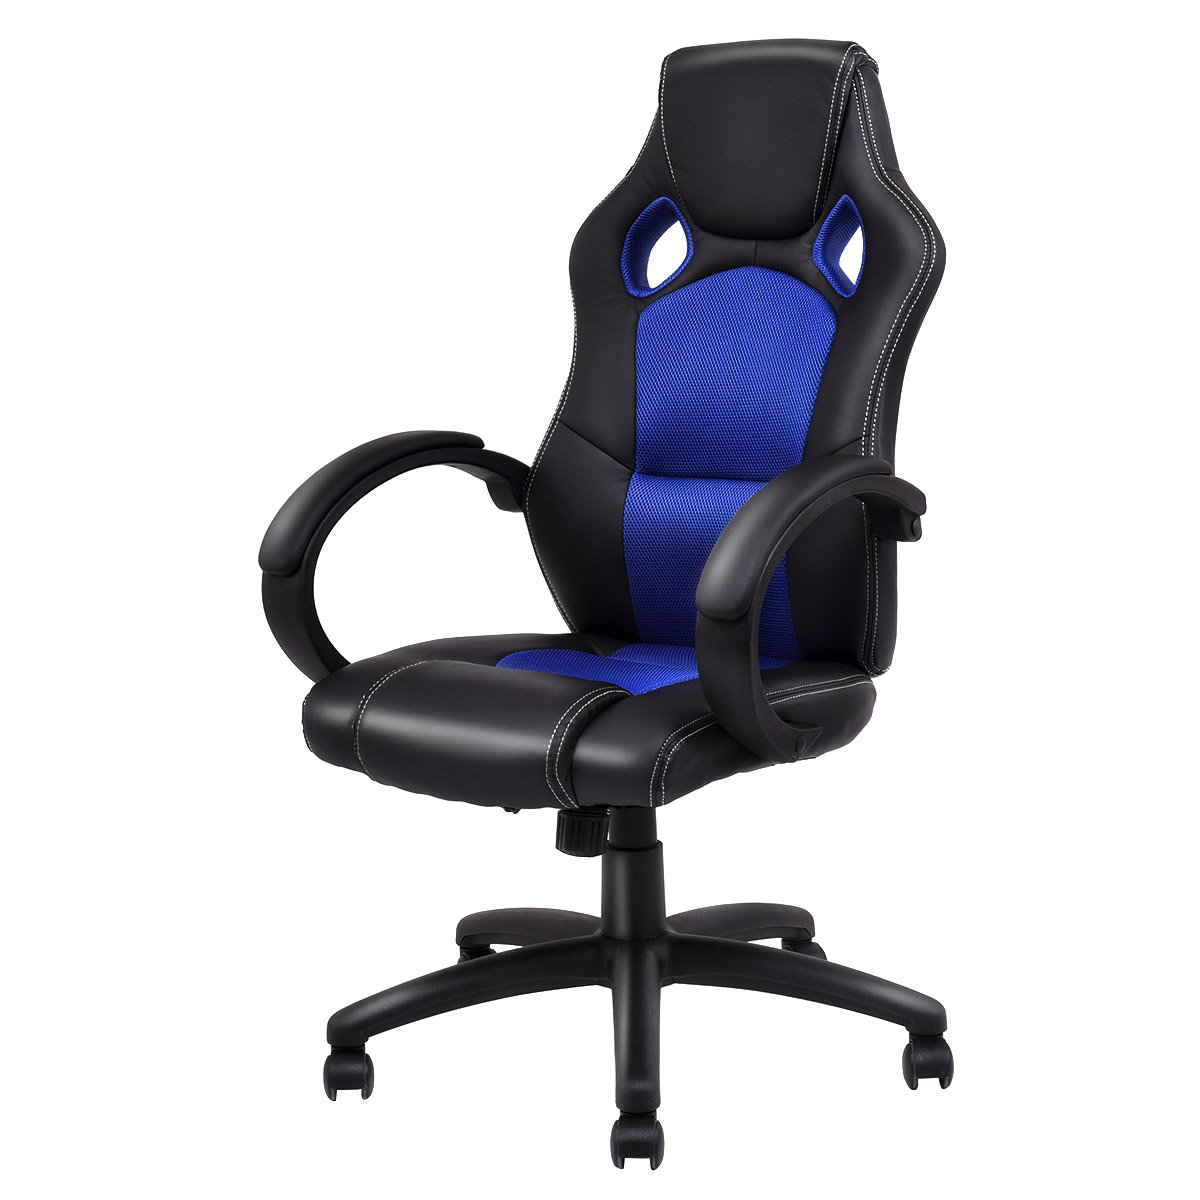 Giantex Gaming Chair Racing Chair High Back Bucket Seat Swivel Executive Office Computer Task Desk Gaming Chair (Style 1, Blue & Black)